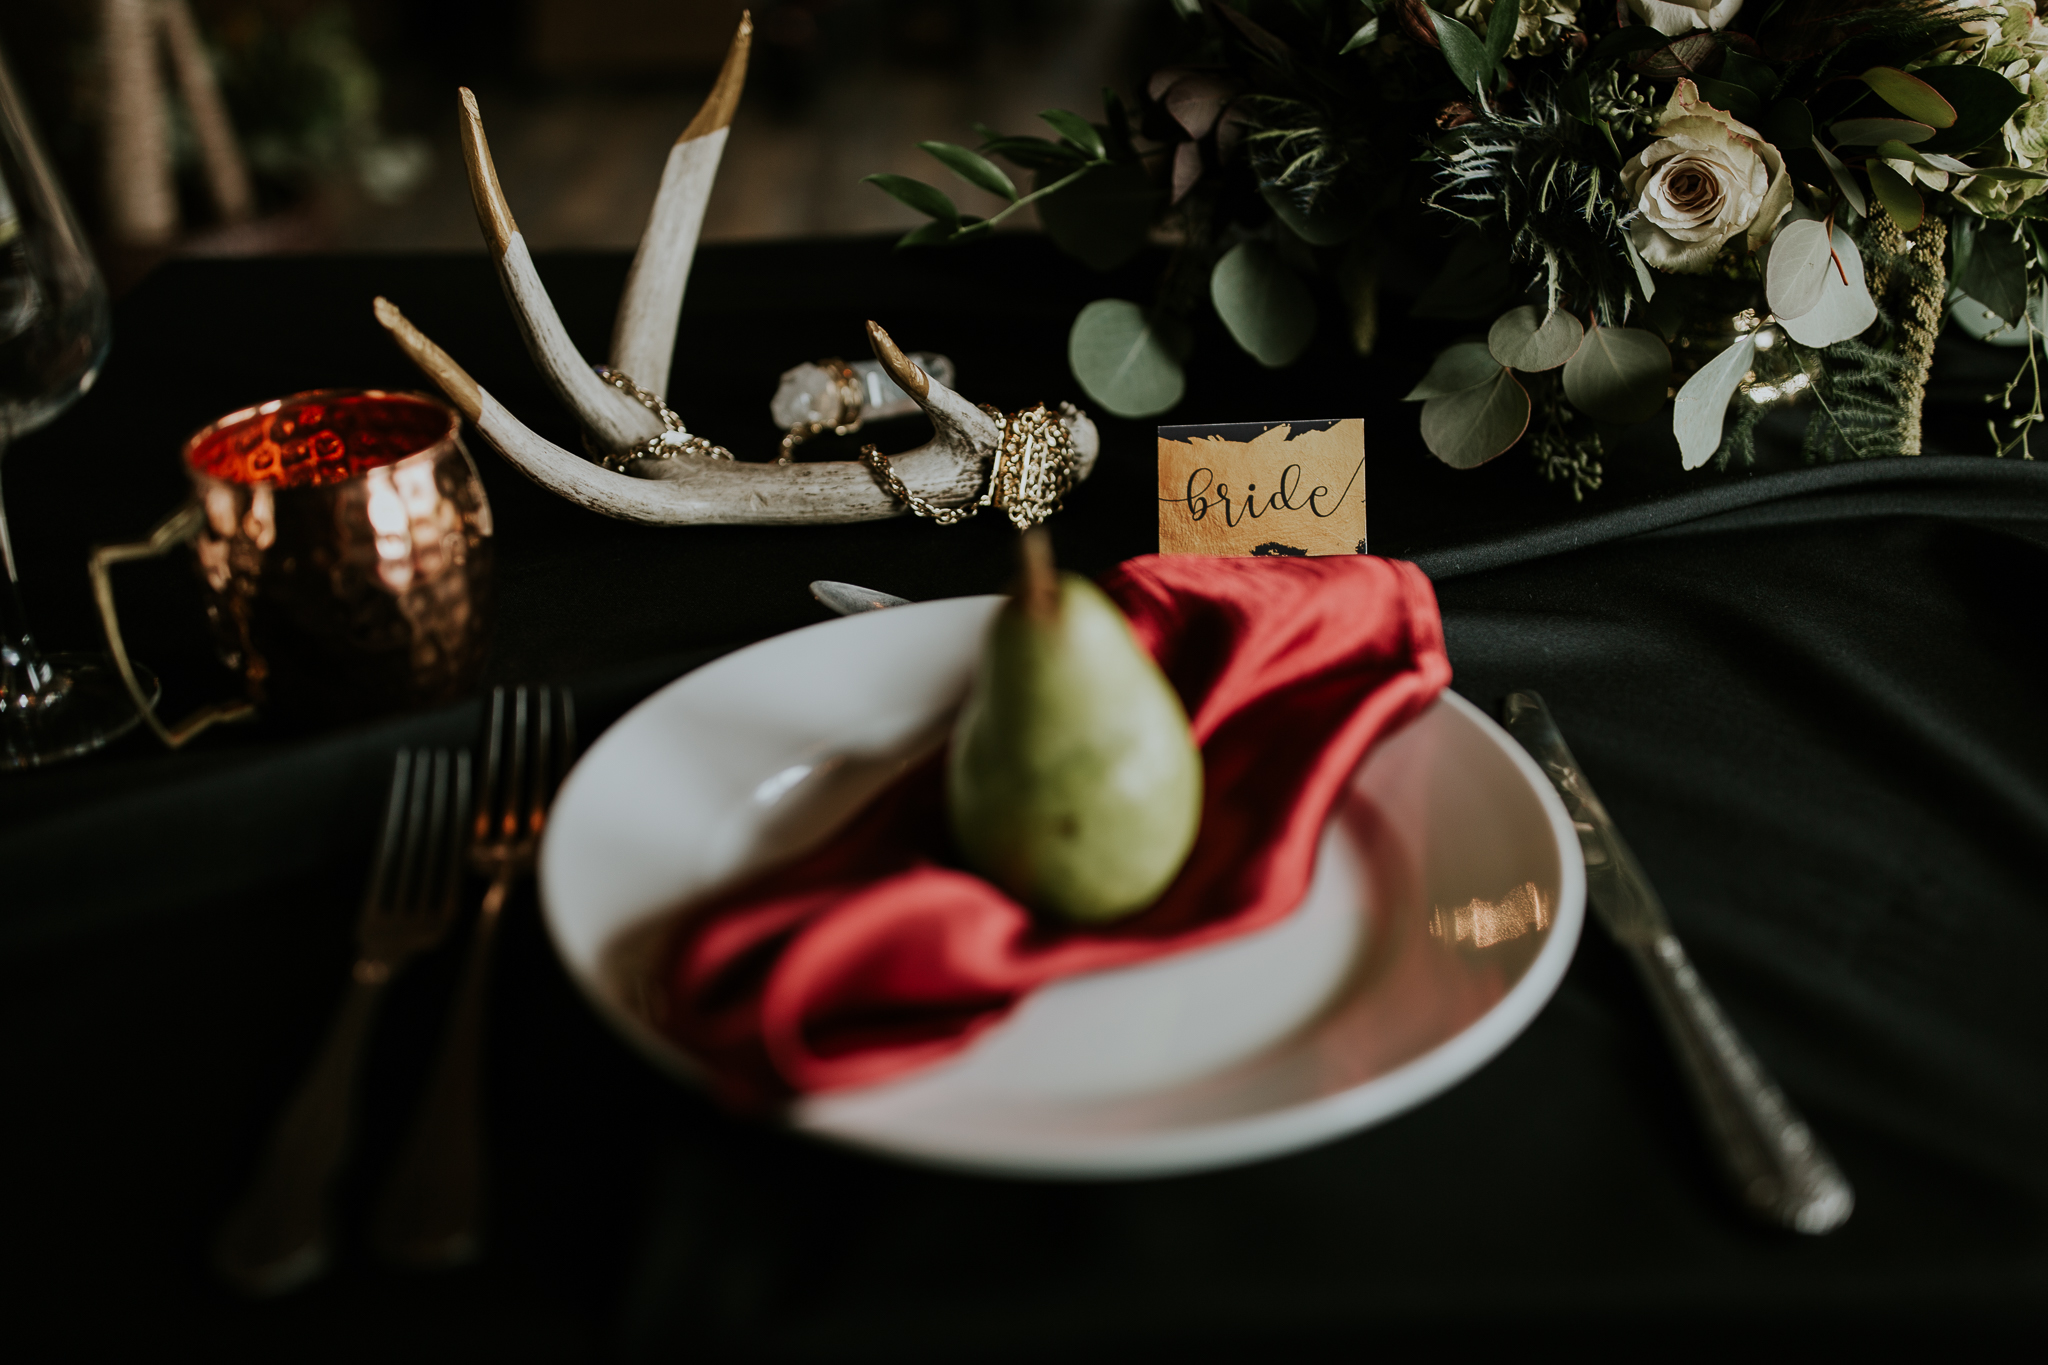 Gold, red and black colour scheme place settings for intimate wedding at Creekside Villa Canmore